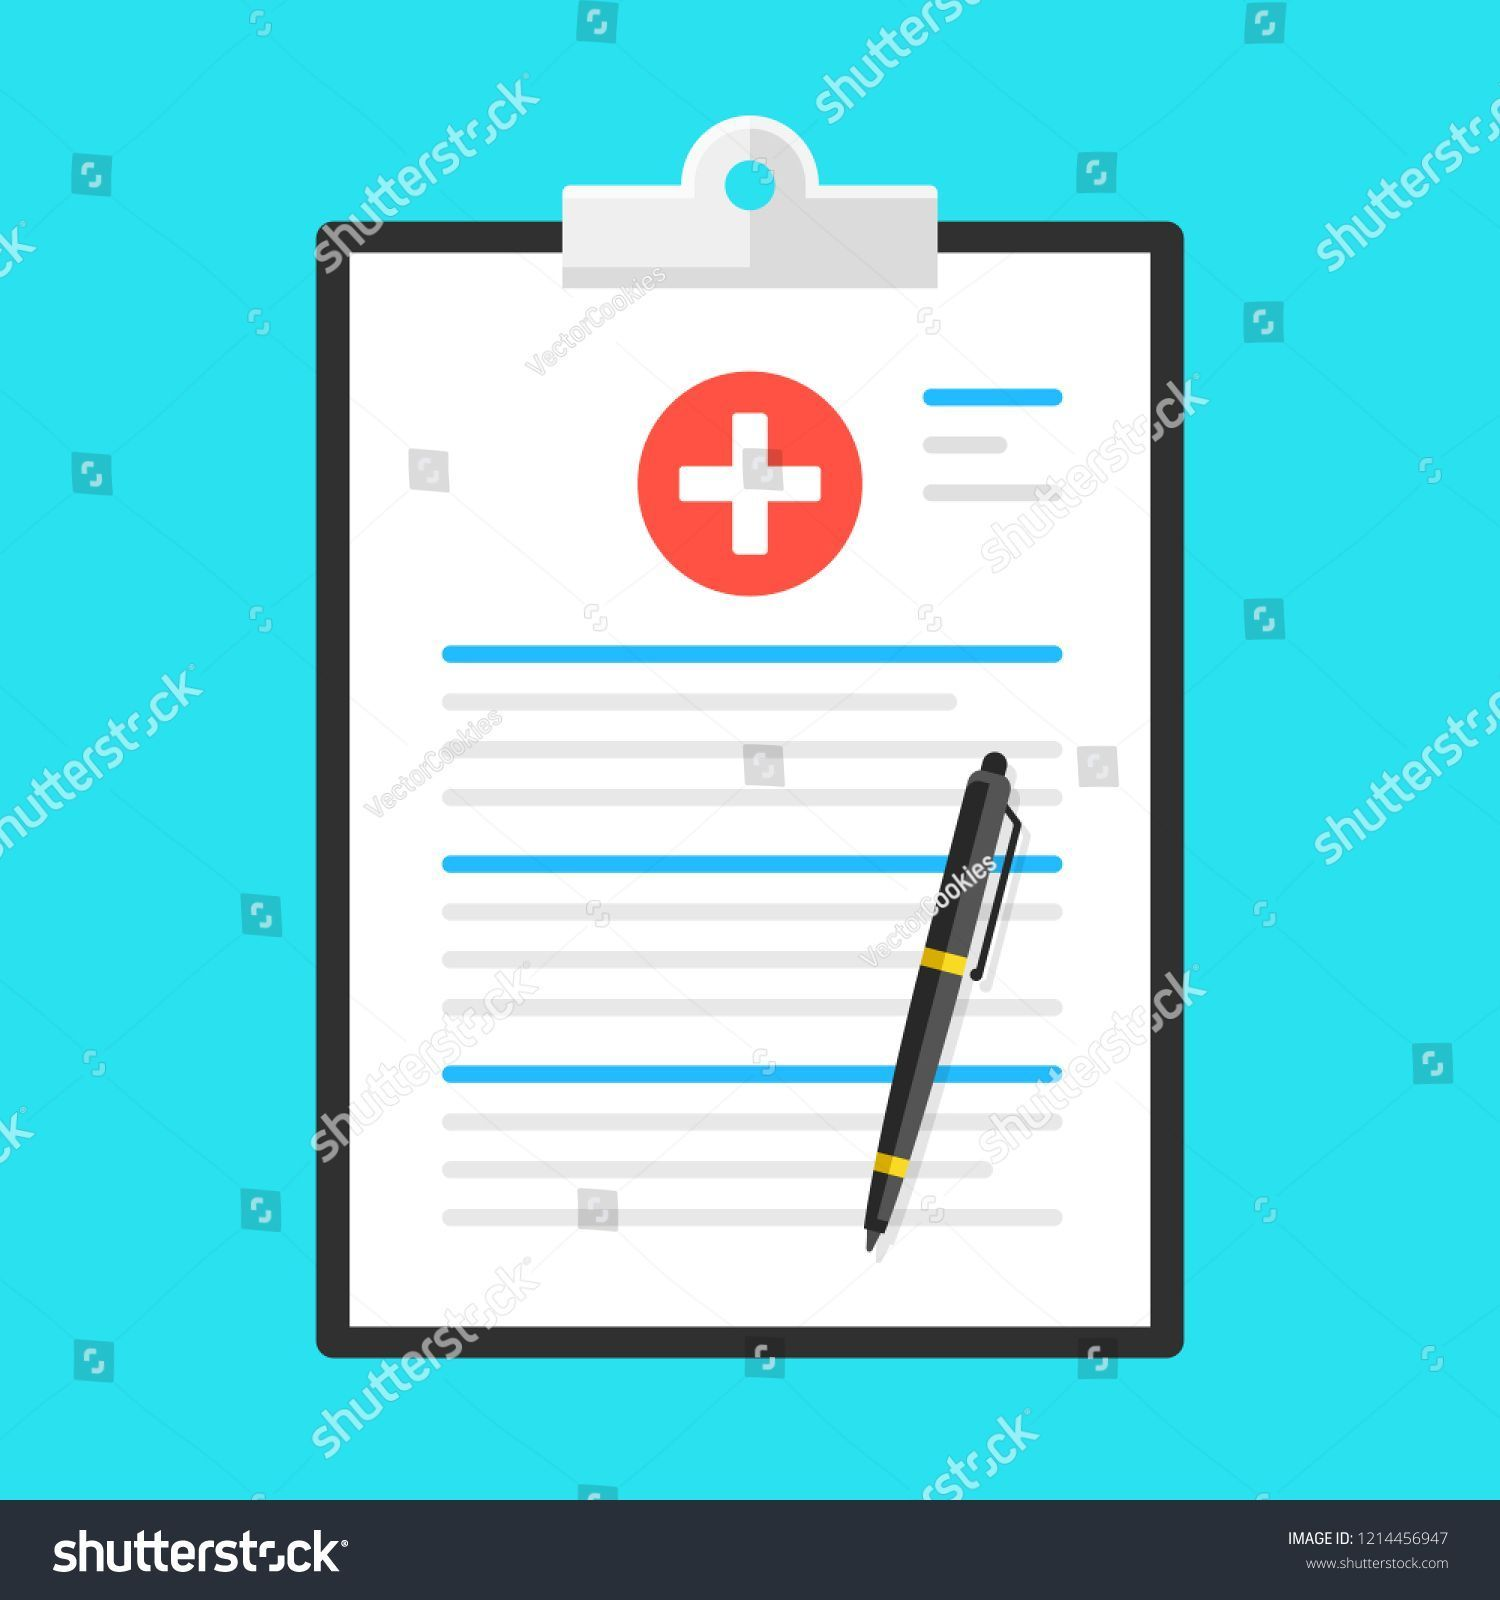 Most Recent Free Of Charge Great Totally Free Medical Form Health